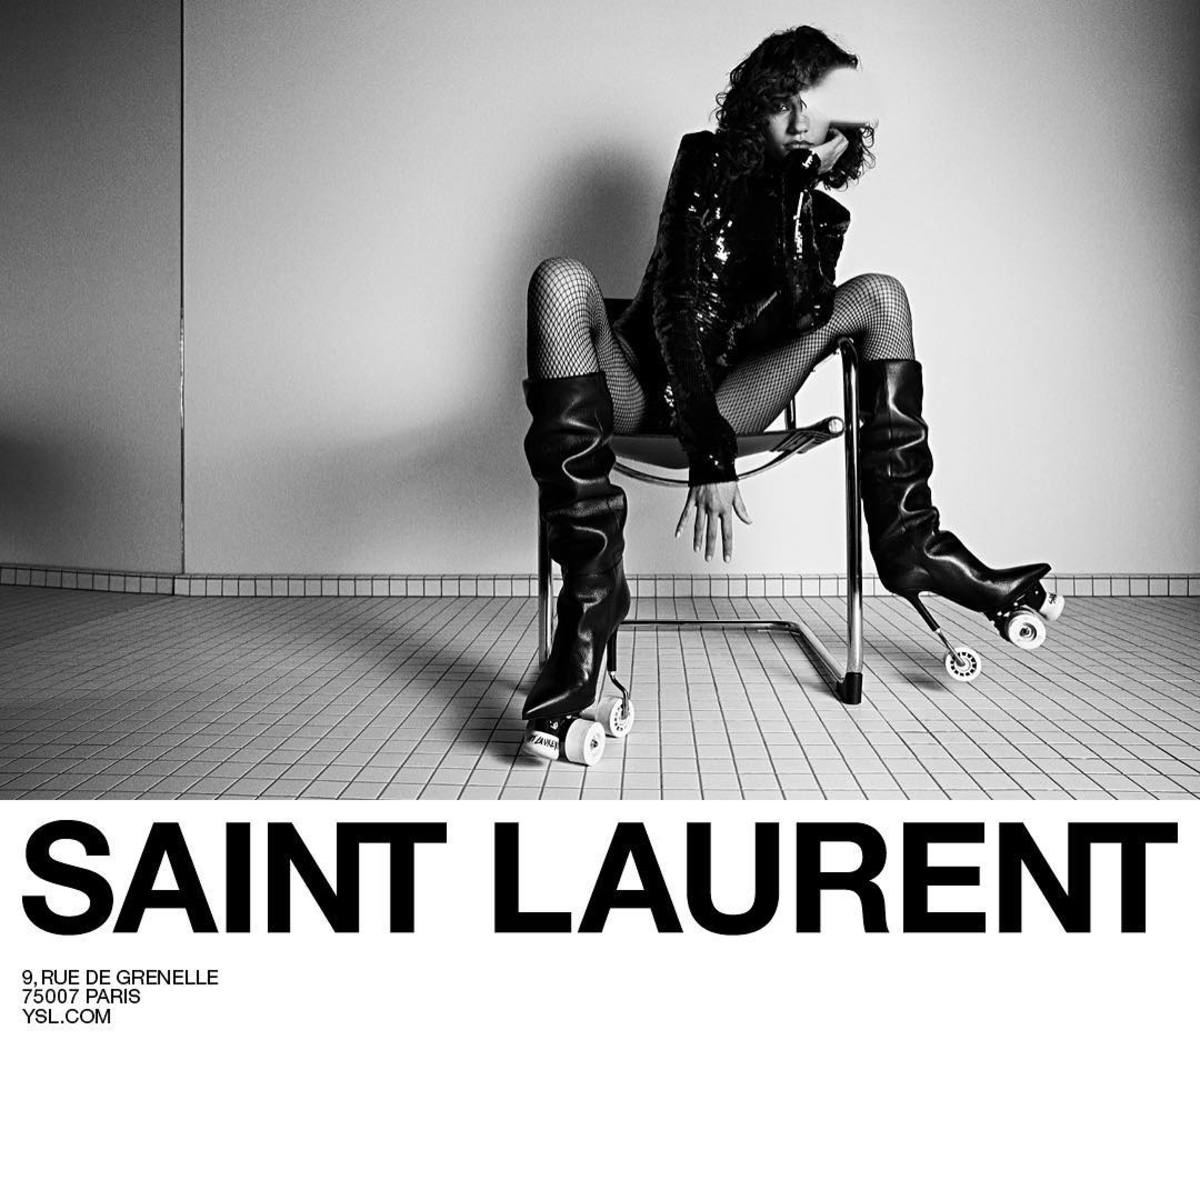 Photo: @ysl/Instagram